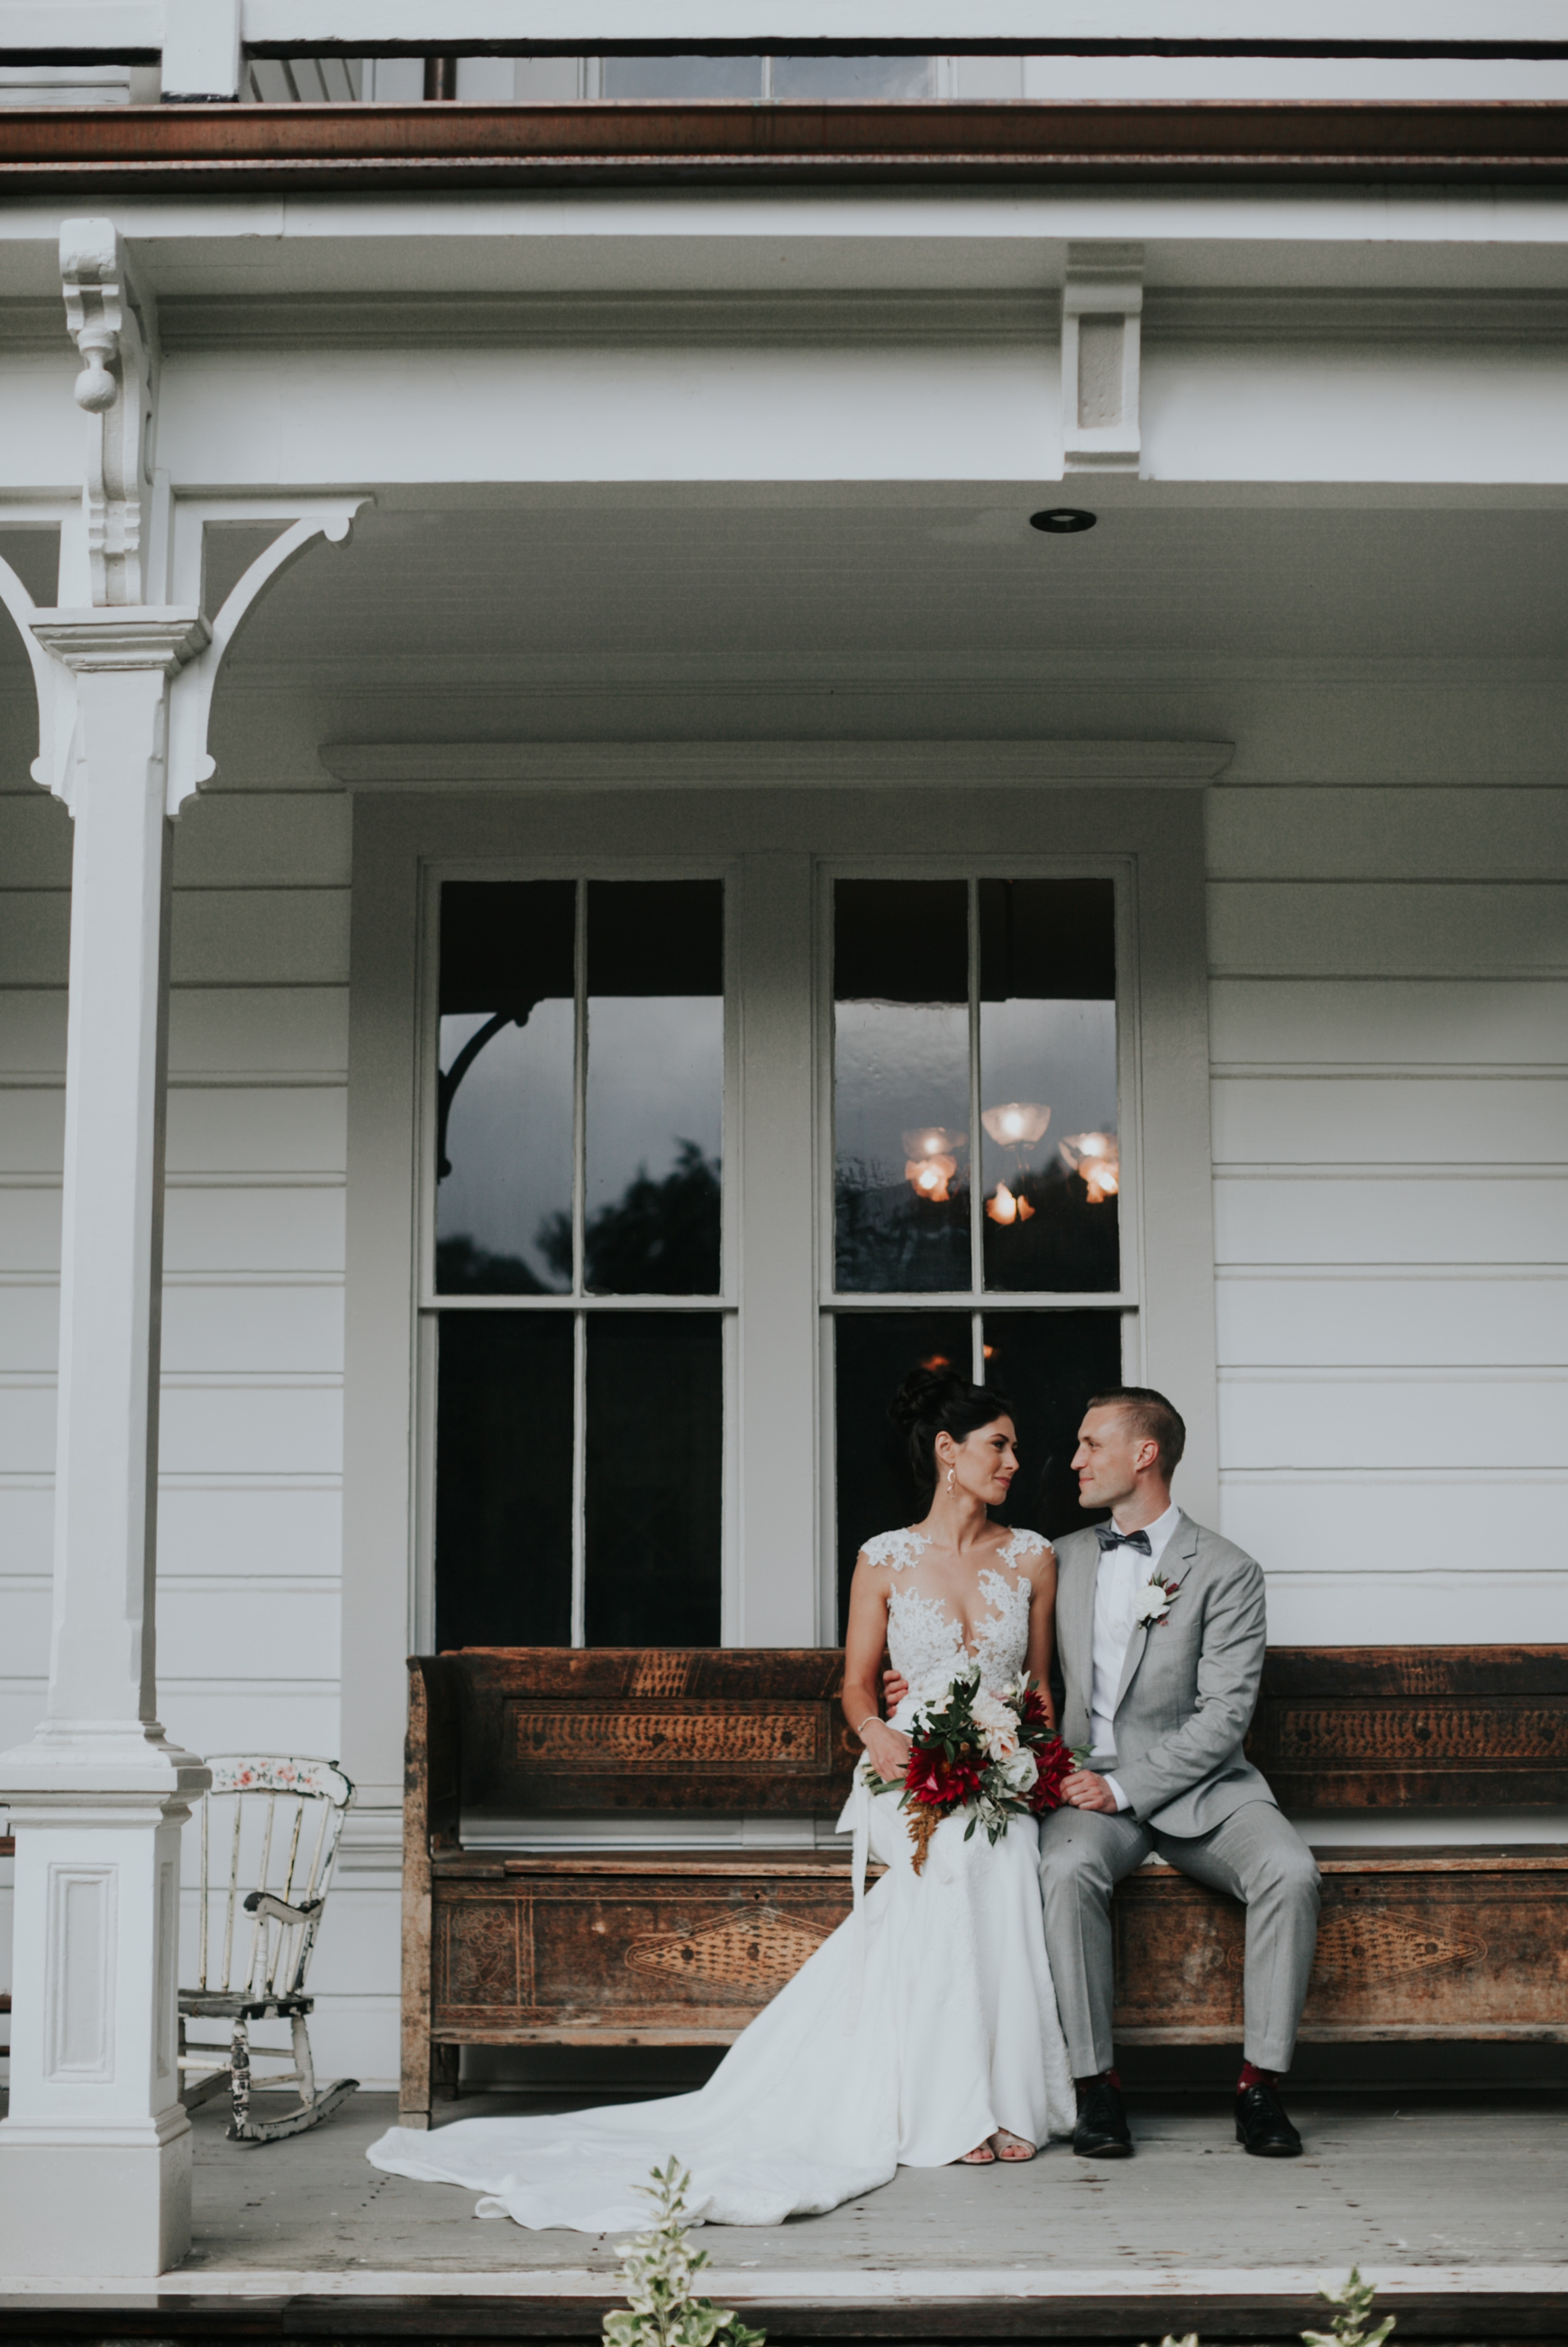 SSS Ranch Wedding Chiara & Jacques Emily Magers Photography-172.jpg